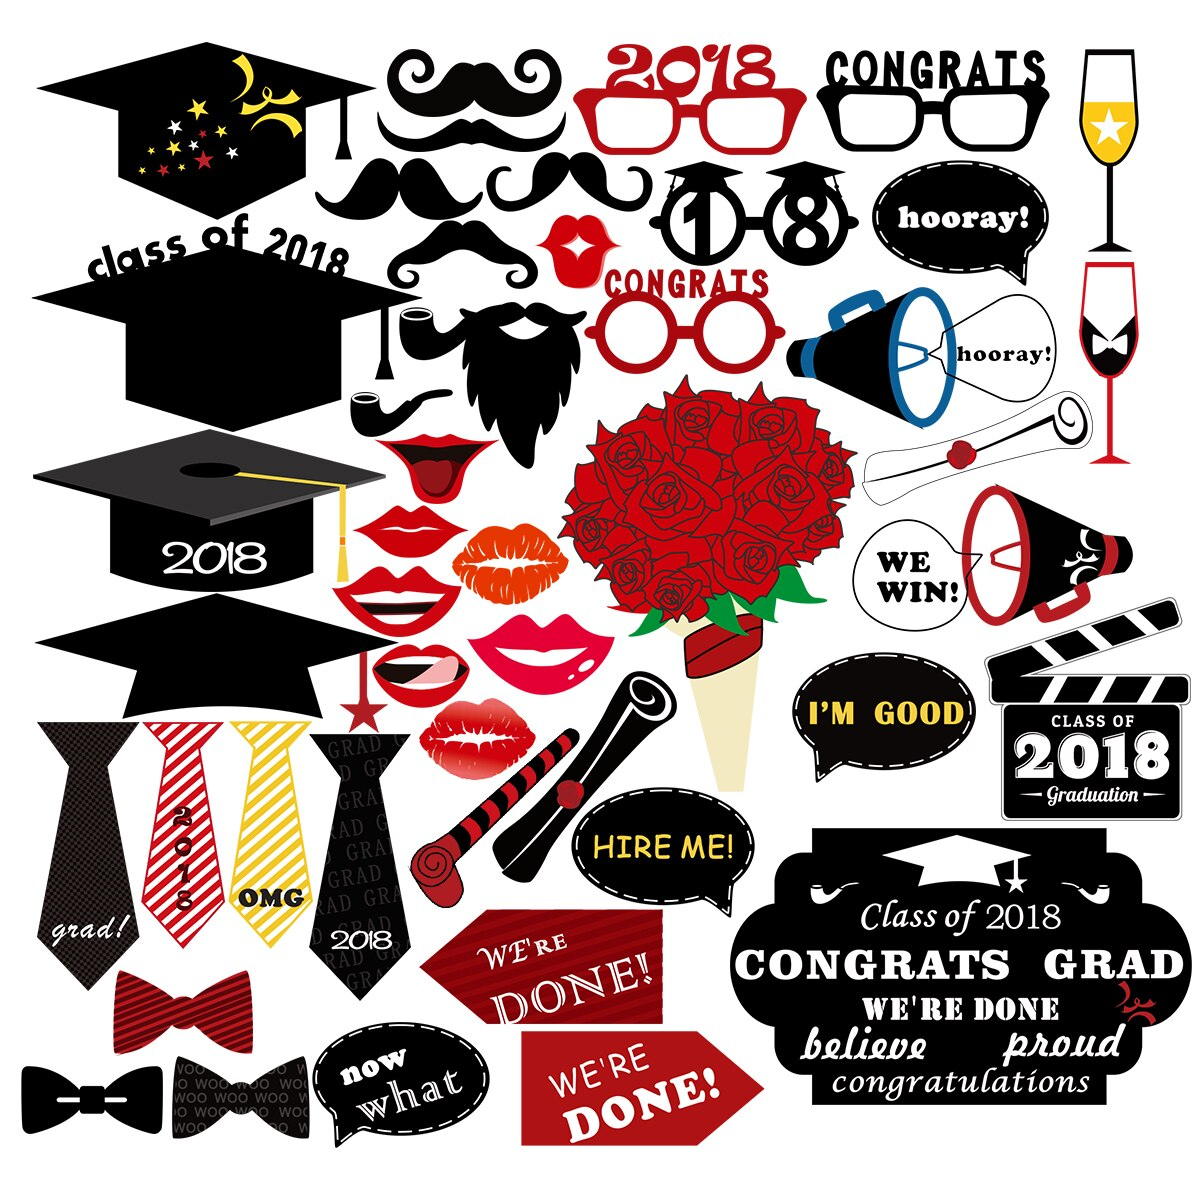 47PCS Class Of 2018 Graduation Party Photo Booth Props Kit Glitter Photo  Props For Graduation Party Decoration Favors.